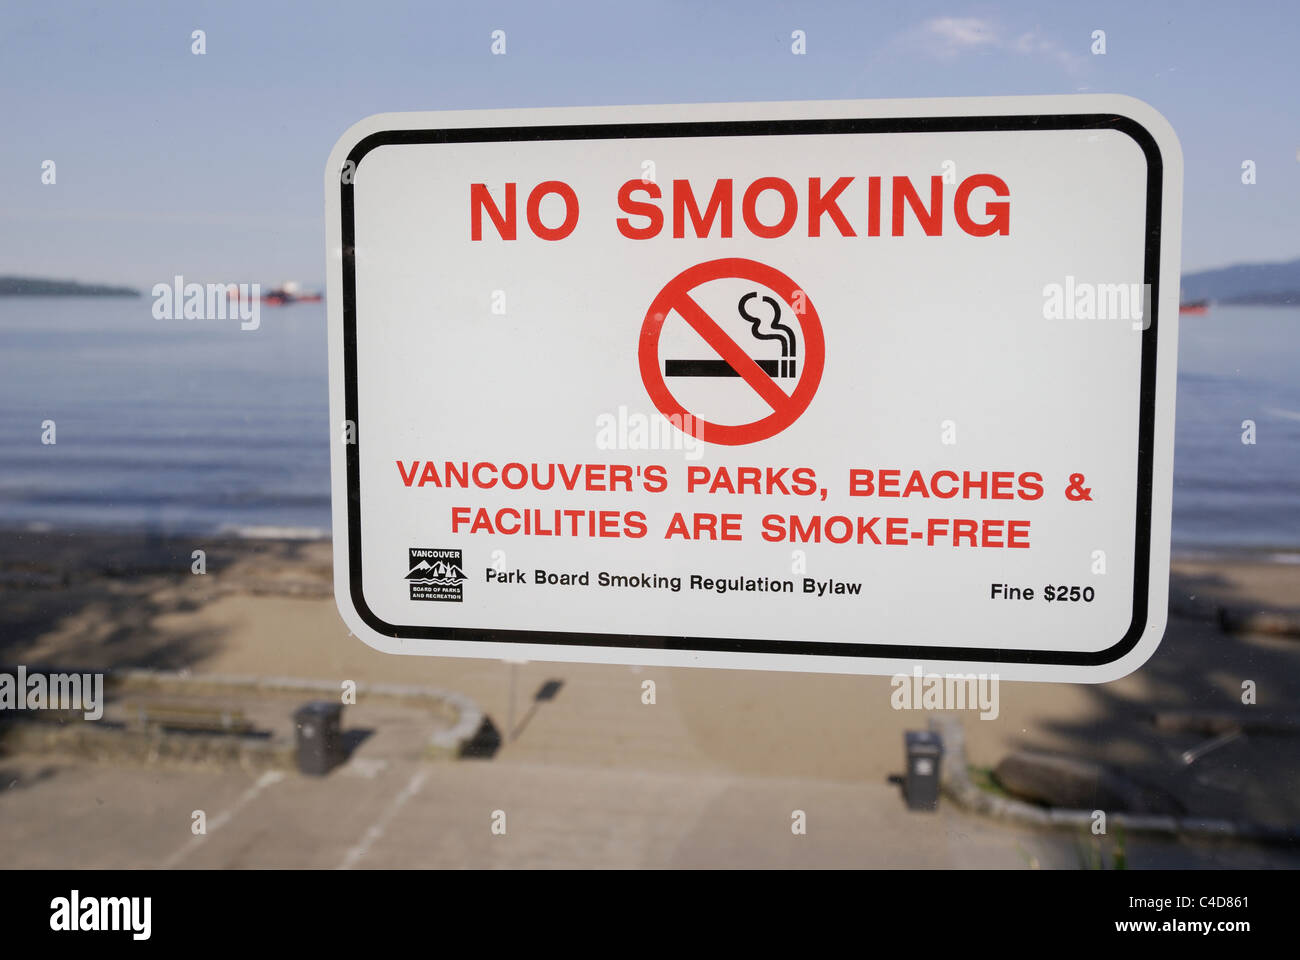 Vancouver park sign prohibiting smoking on all its beaches and parks. - Stock Image